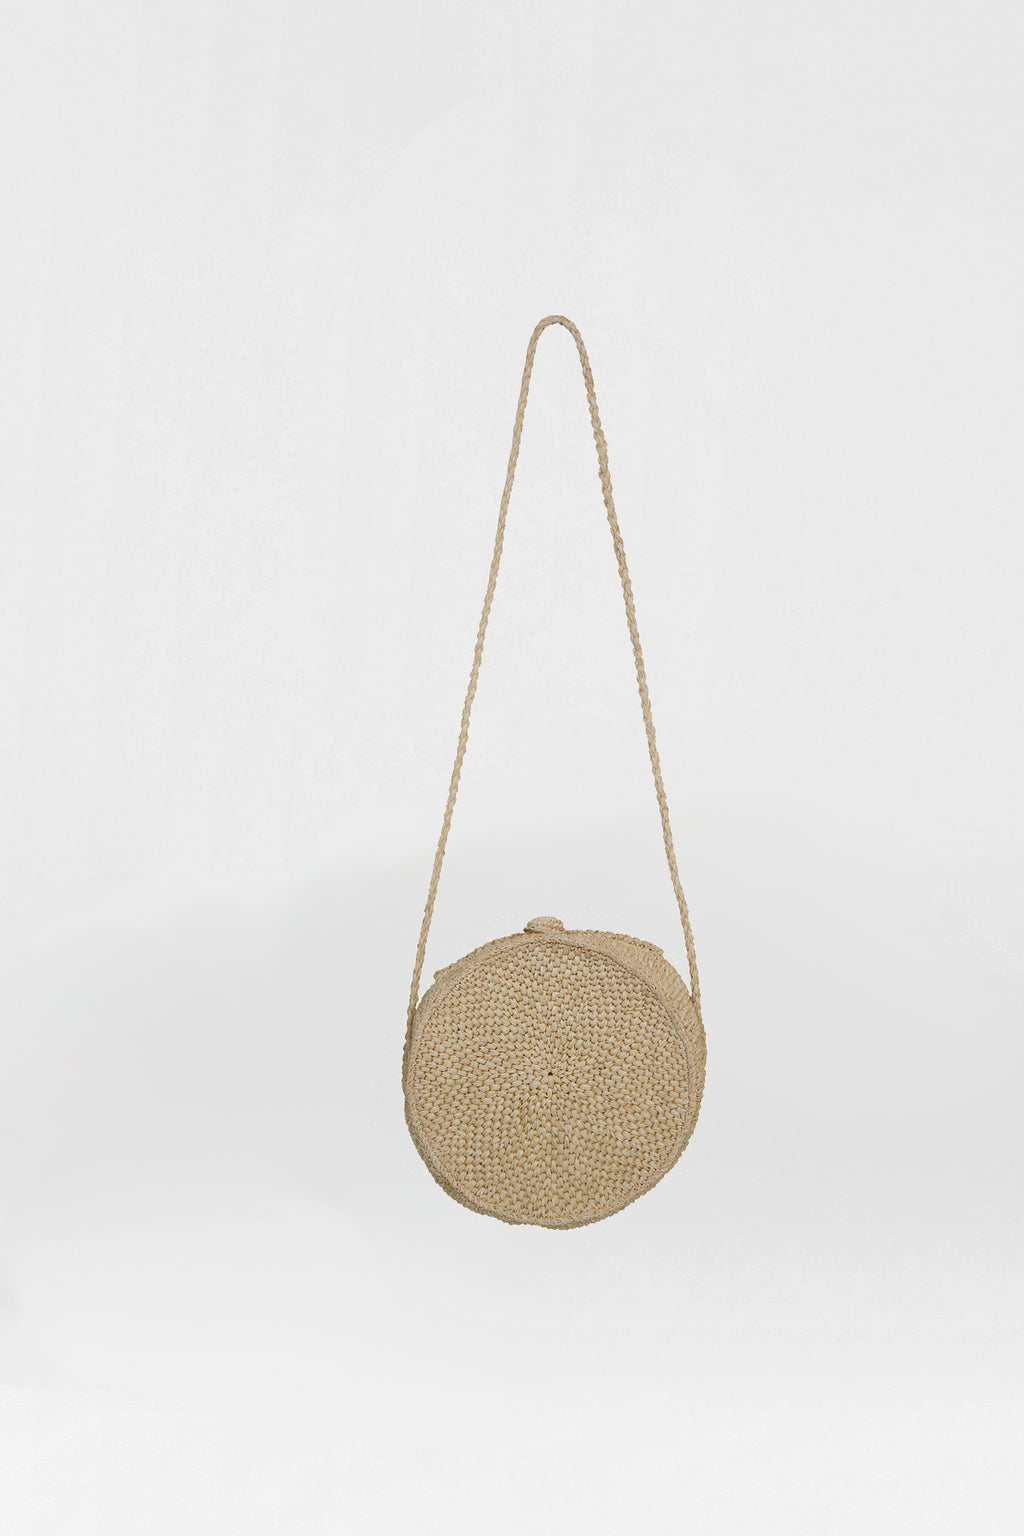 MADE IN MADA - Heliette Bag online at PAYA boutique